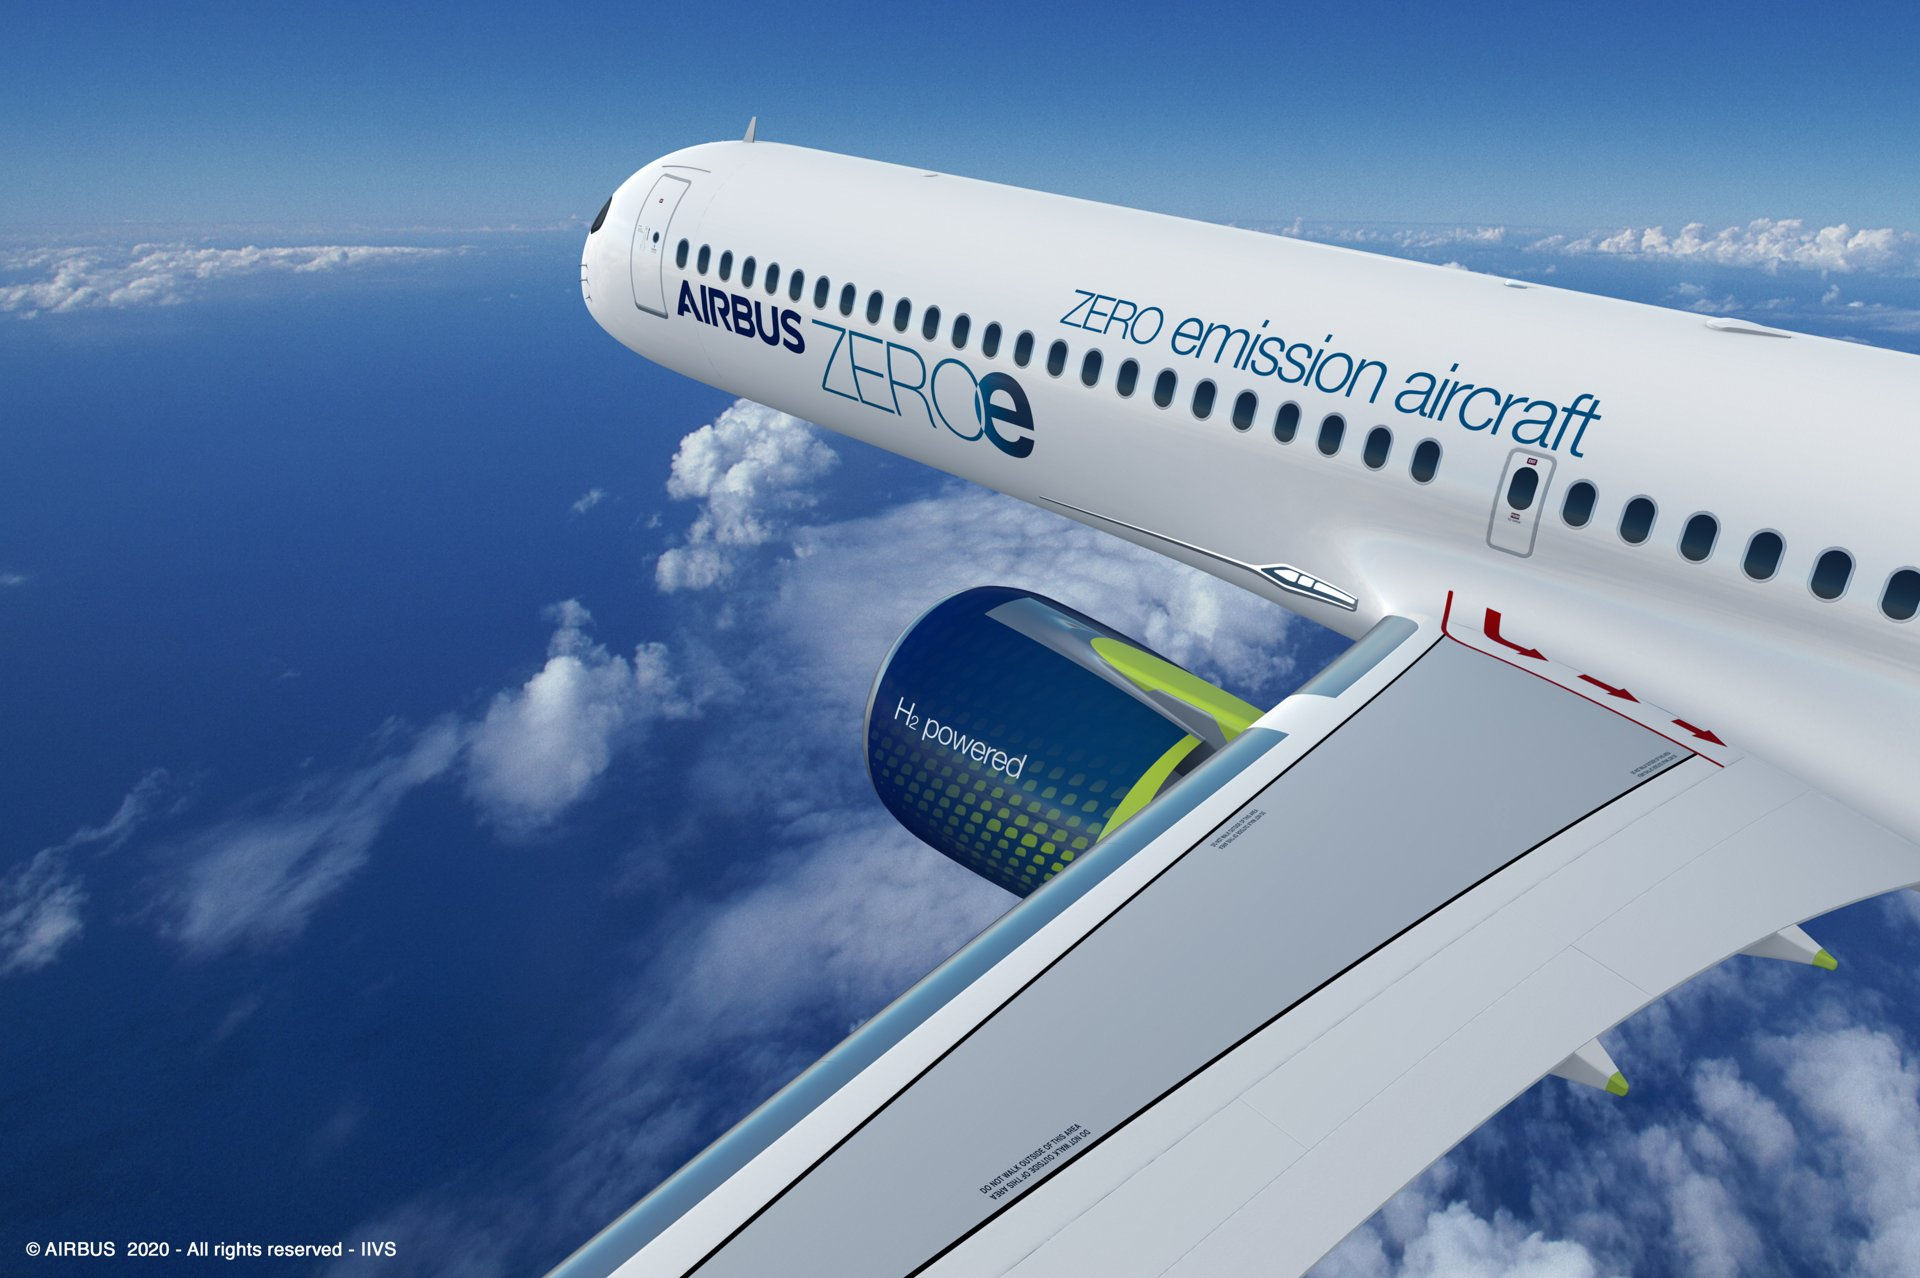 ZEROe is an Airbus concept aircraft. In the turbofan configuration, two hybrid hydrogen turbofan engines provide thrust. The liquid hydrogen storage and distribution system is located behind the rear pressure bulkhead